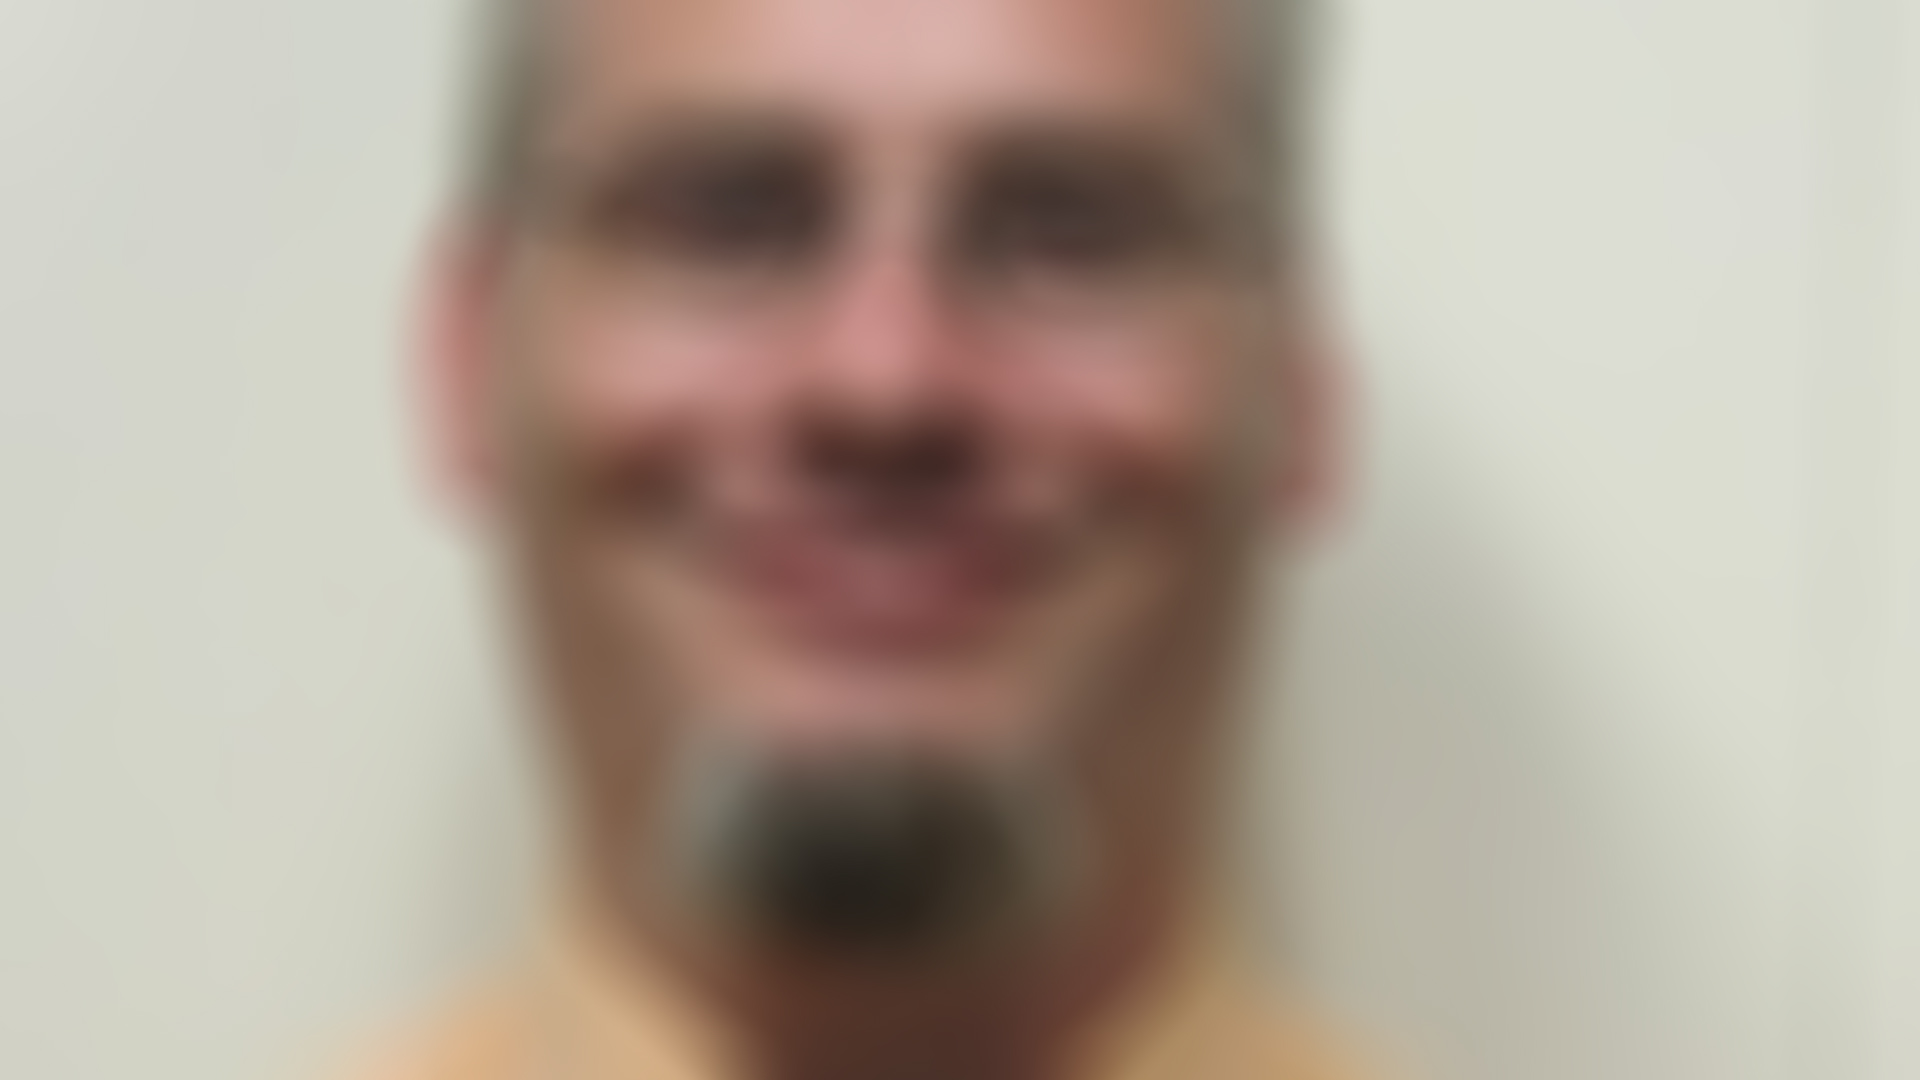 Blurry picture of Skepticon 8 speaker Justin Vollmar's headshot that is used as a background photo on the website.